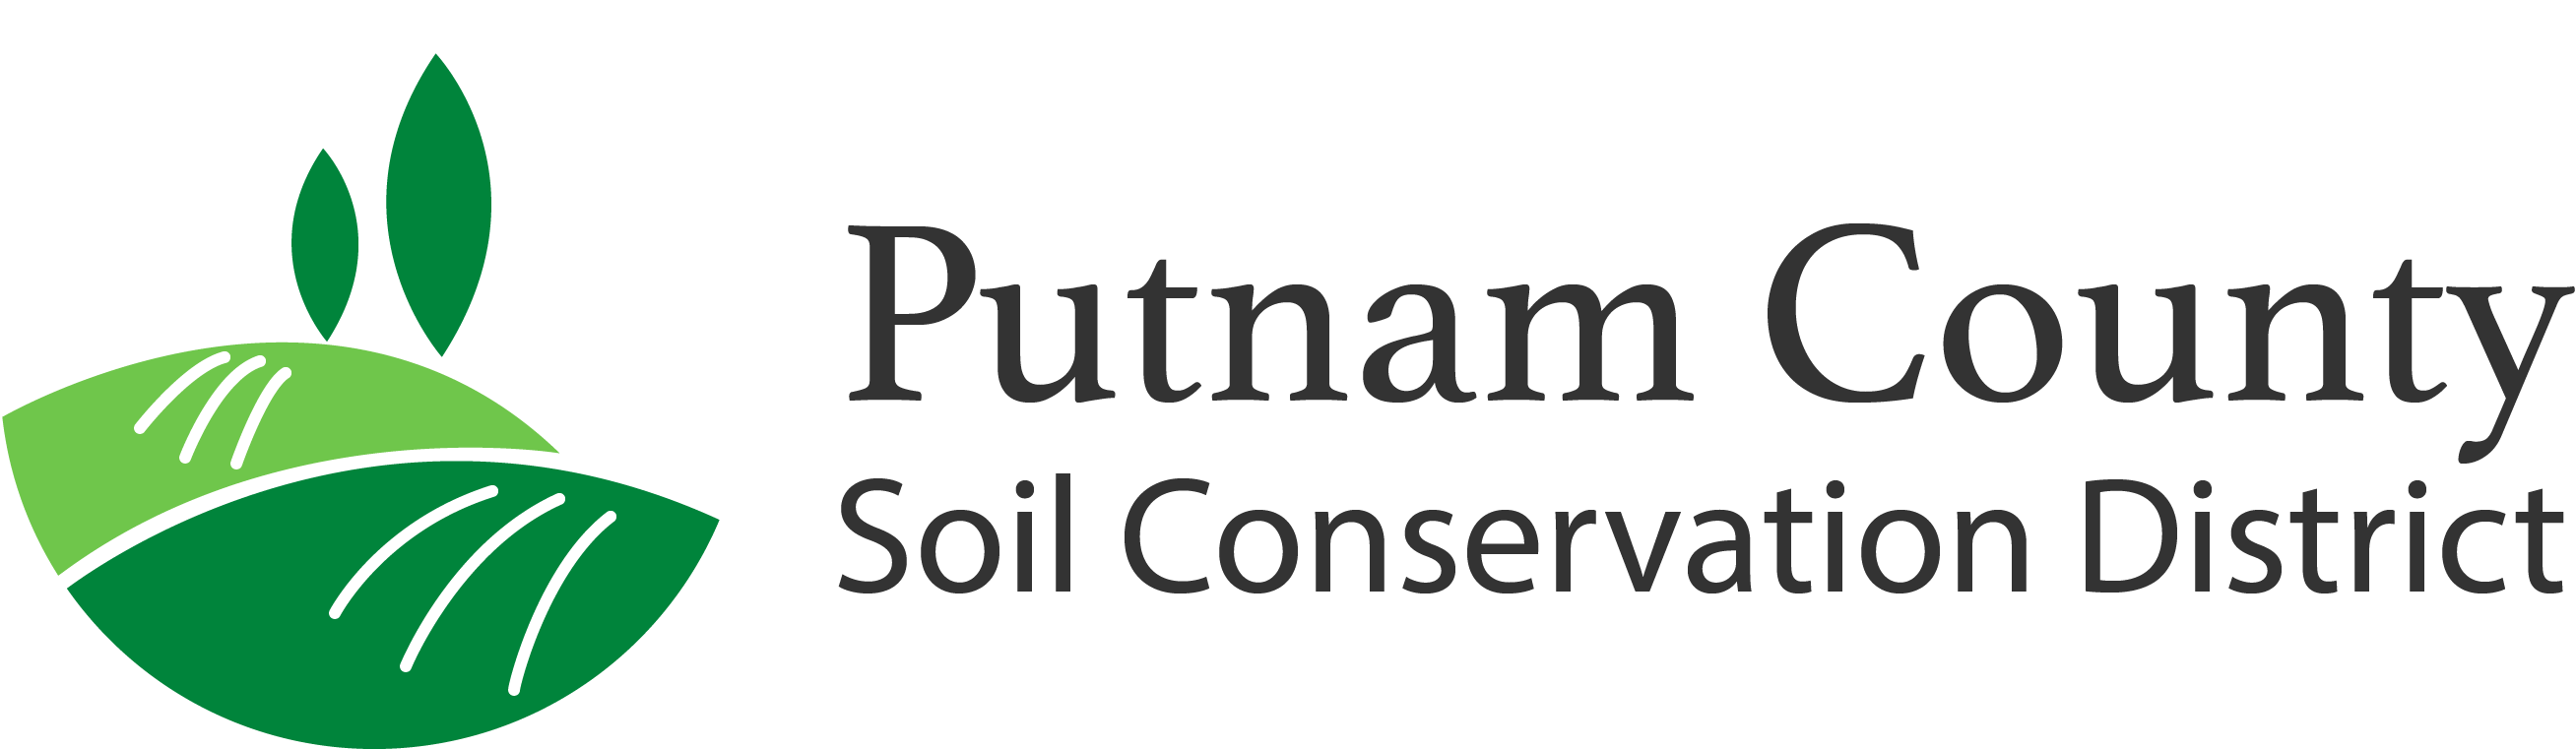 Putnam County Soil Conservation District